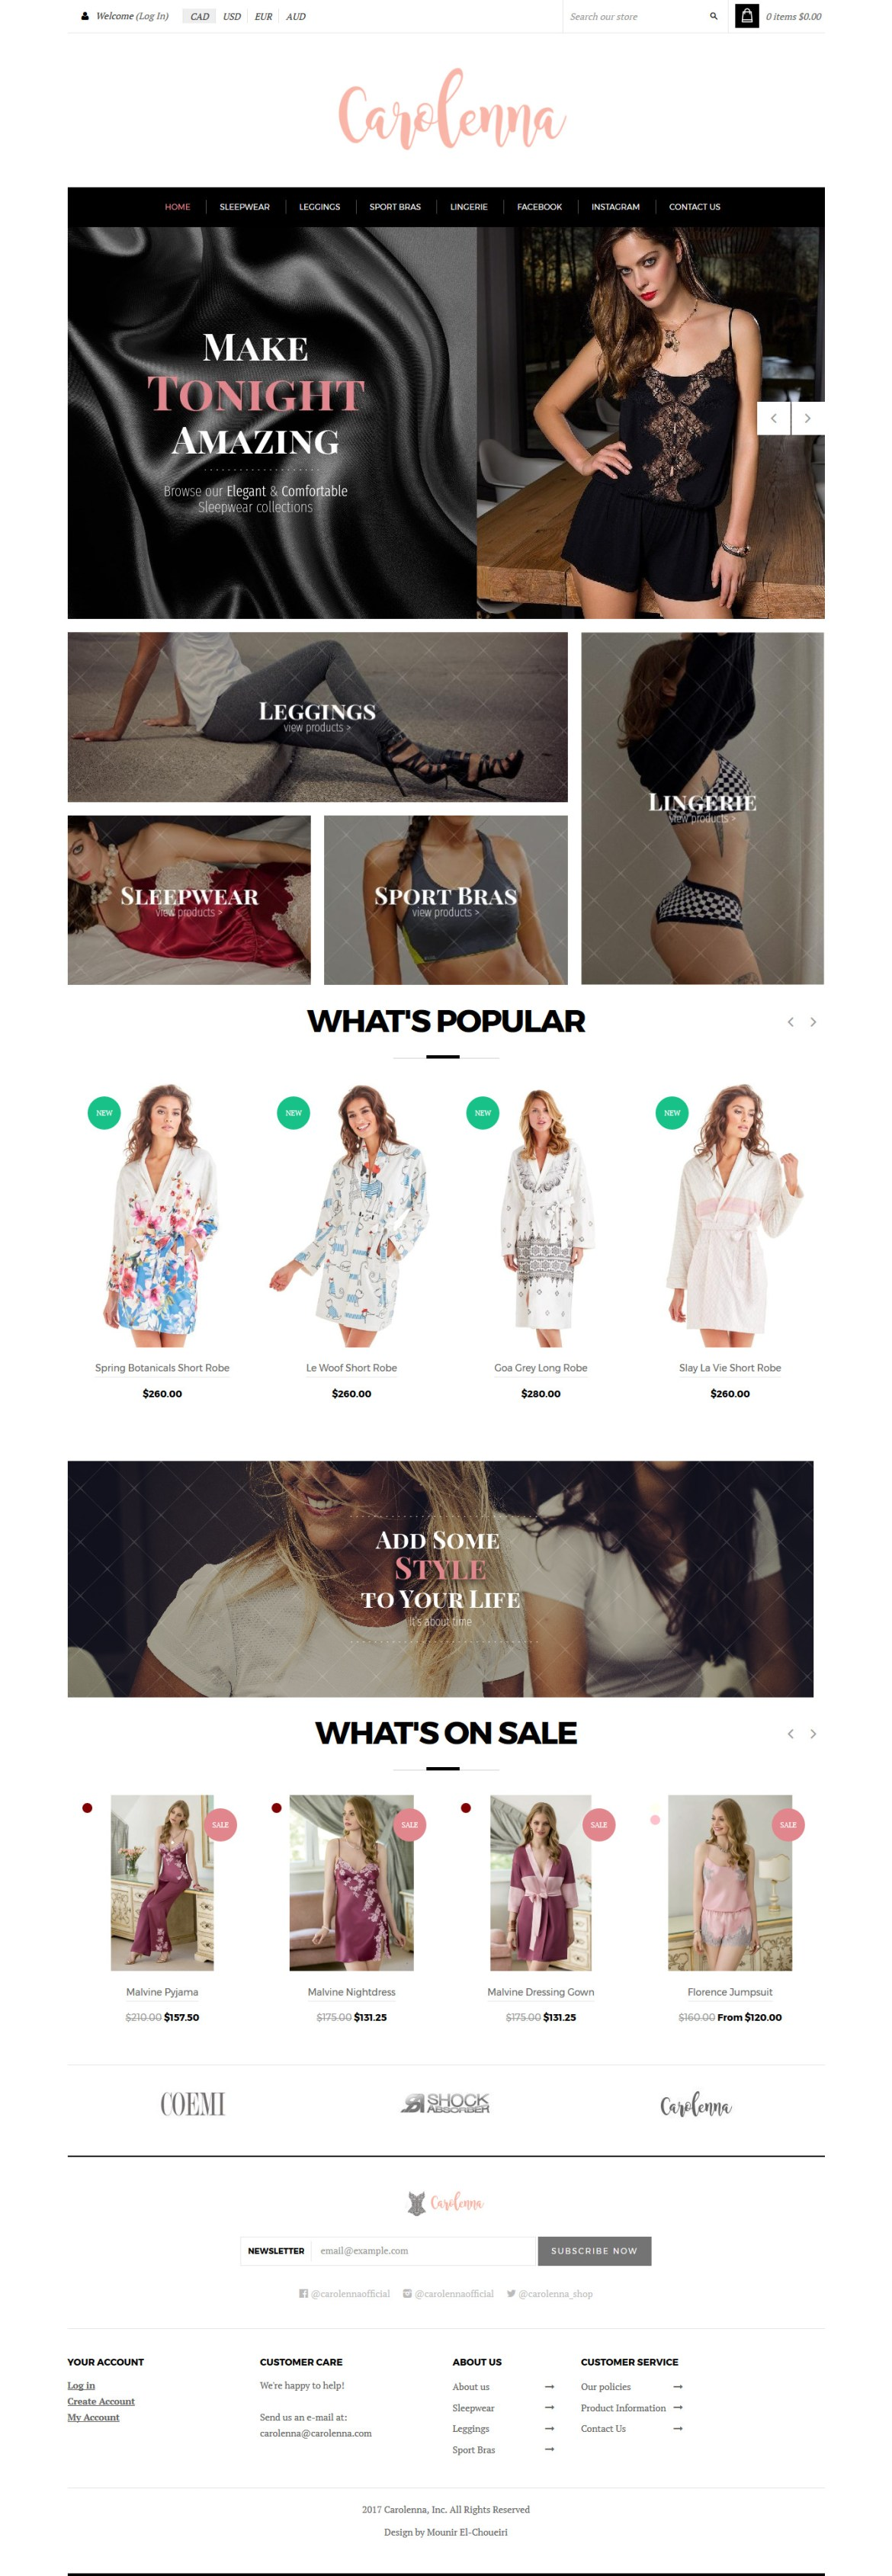 Women's online clothing store (website design & UX design mockup)